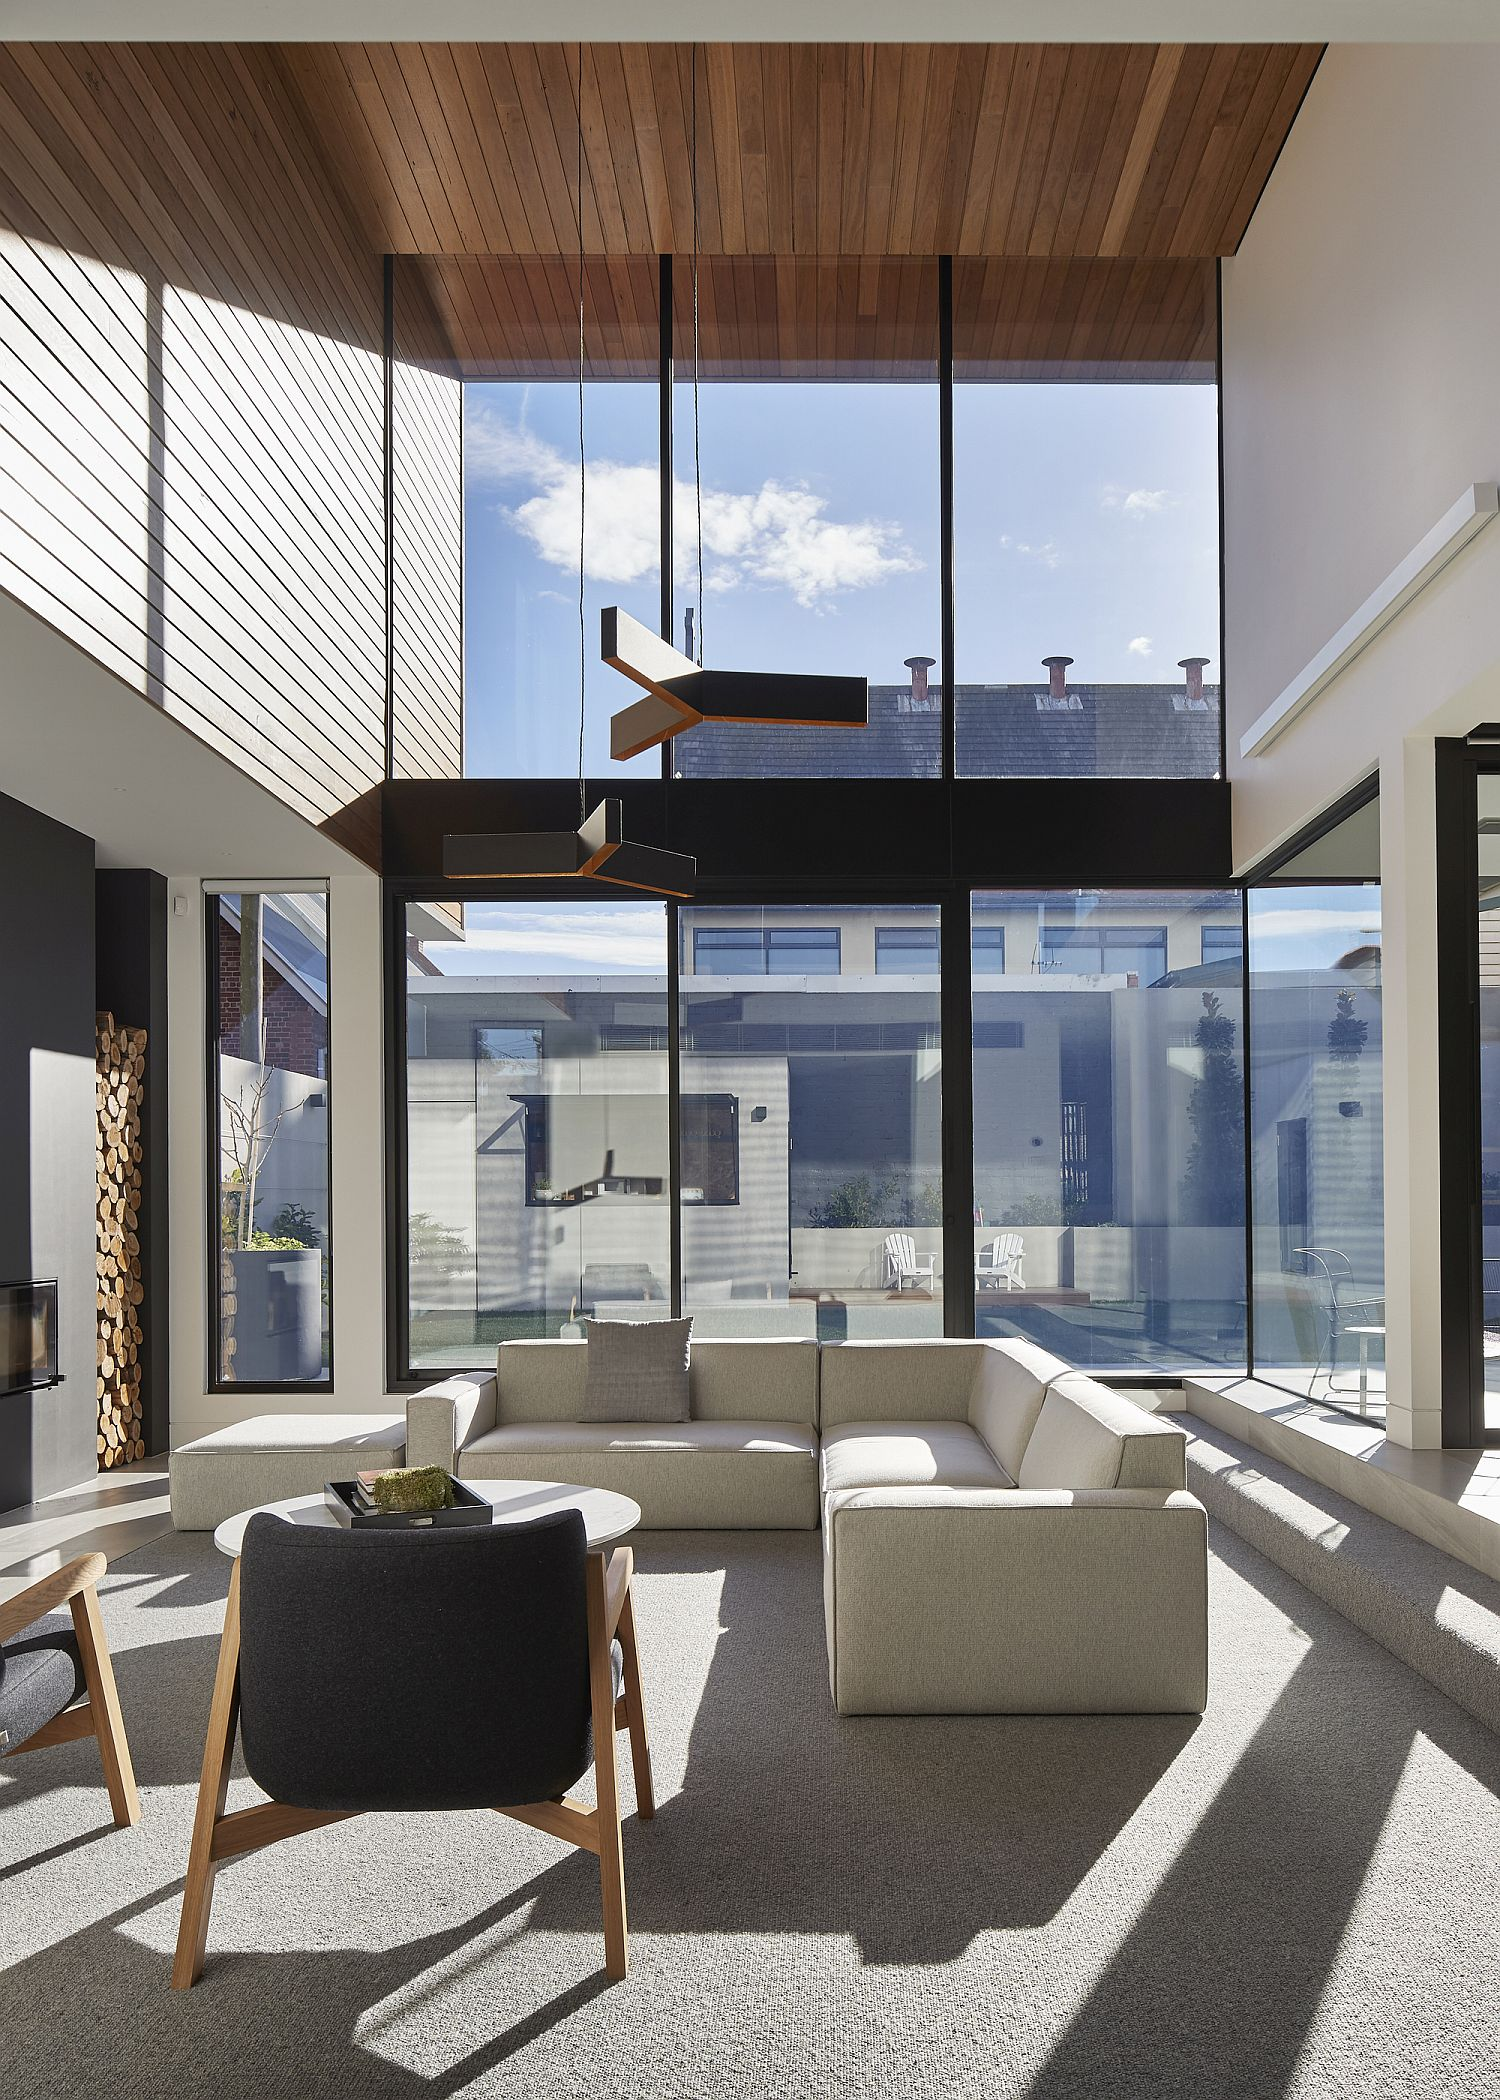 Dark-metallic-frame-glass-windows-and-a-wooden-roof-give-the-interior-a-unique-look